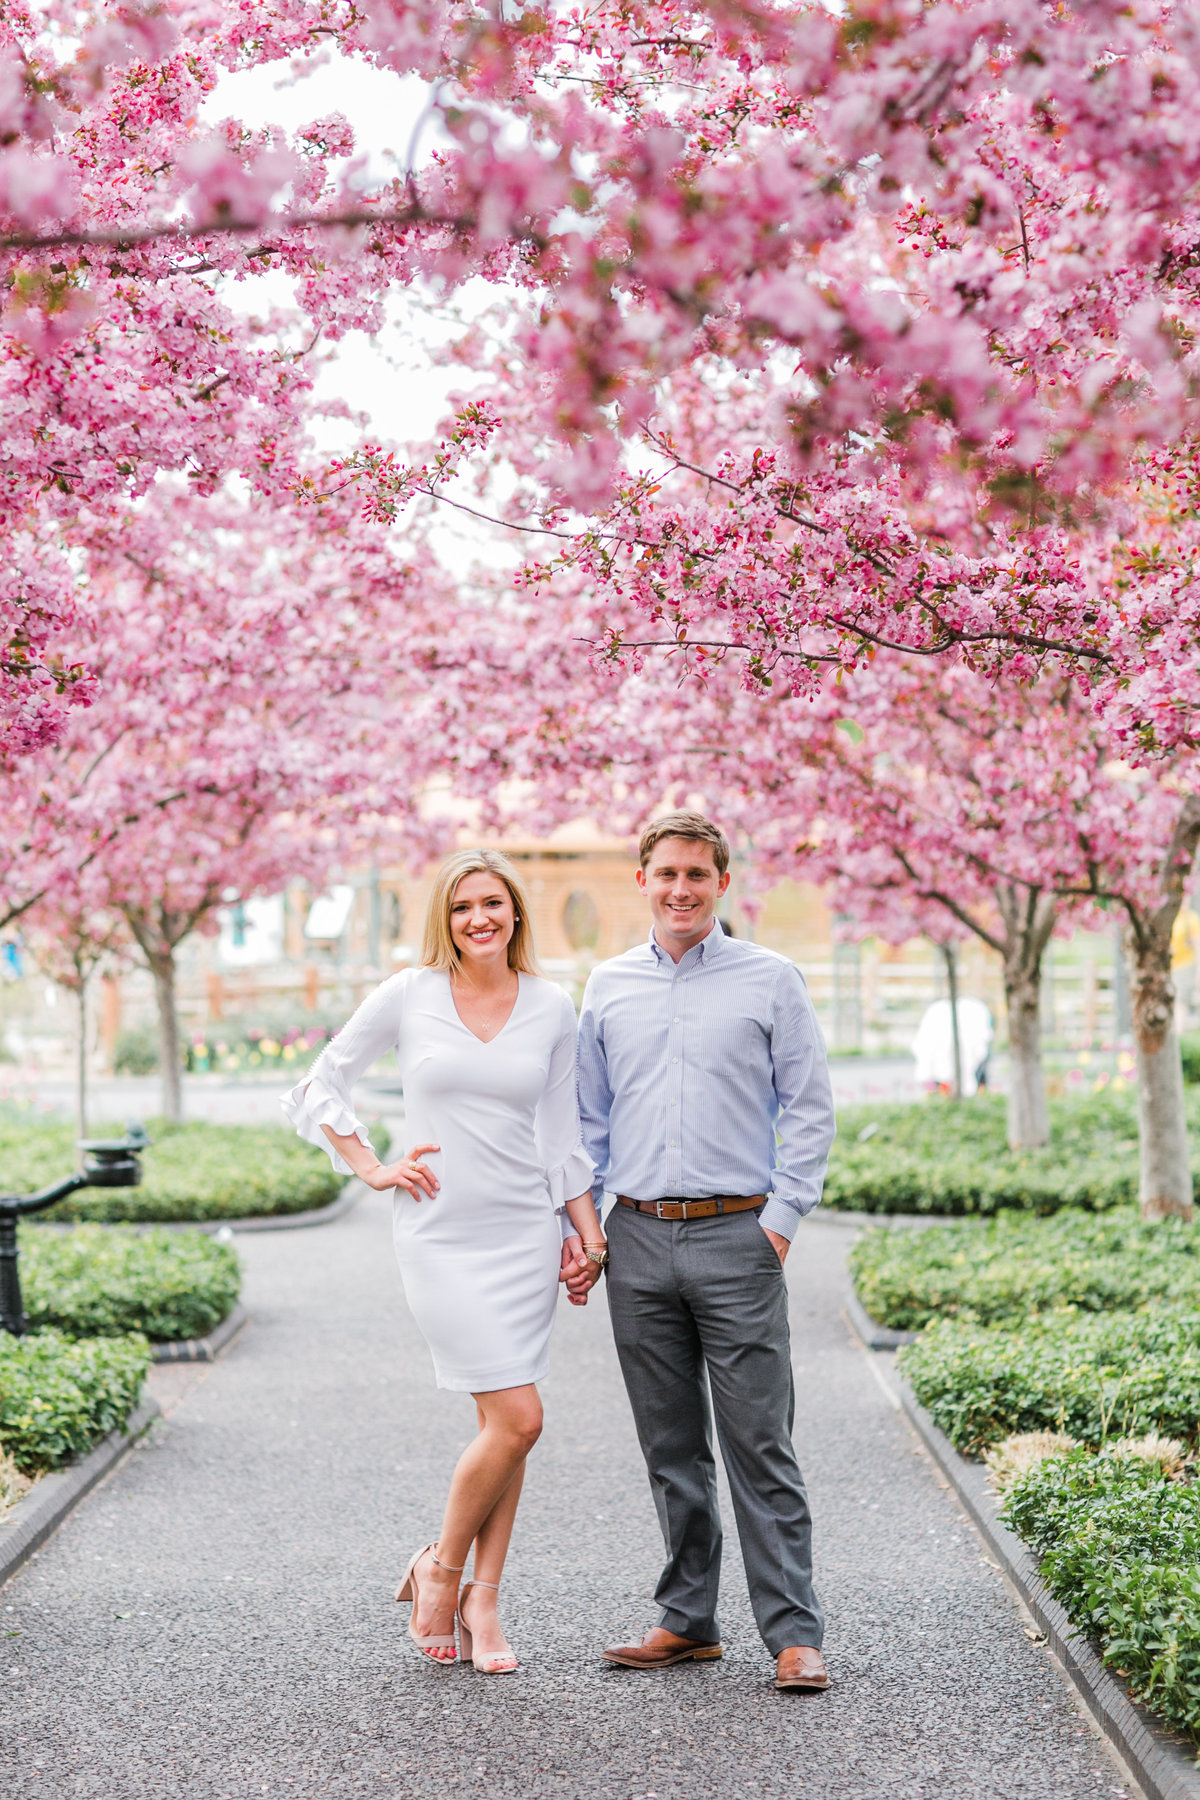 Molly-Marcus-Engagement-Photos-Missouri-Botanical-Gardens-Jackelynn-Noel-Photography-10